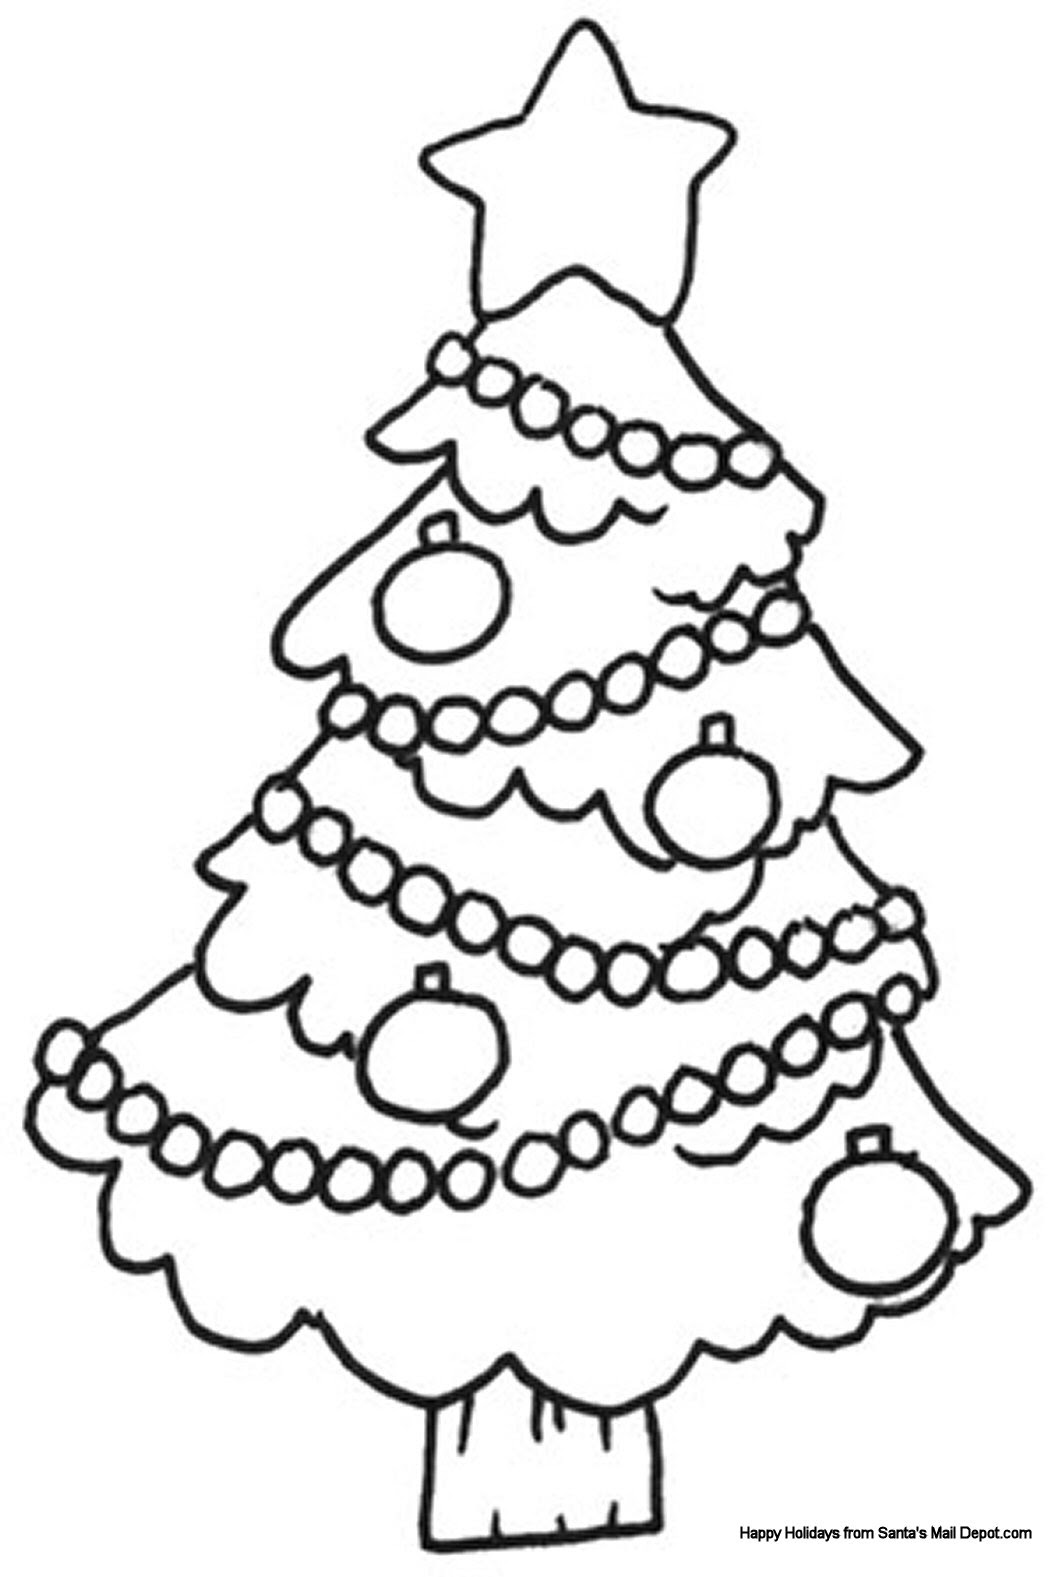 Easy Coloring Pages For 4 Year Olds at GetColorings.com ...